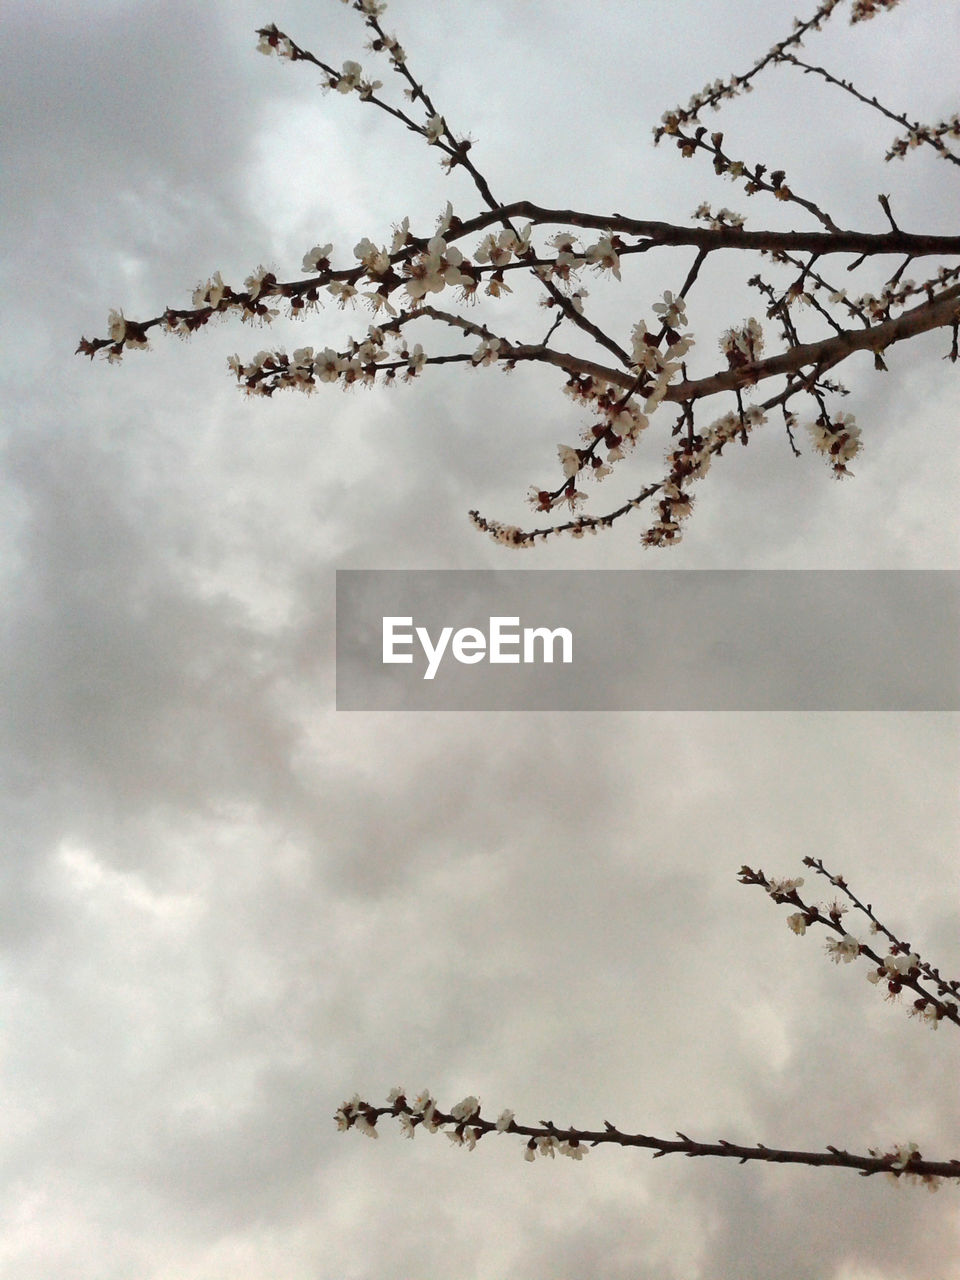 cloud - sky, sky, plant, tree, branch, low angle view, beauty in nature, nature, day, no people, tranquility, growth, flower, outdoors, flowering plant, blossom, twig, freshness, springtime, cherry blossom, spring, cherry tree